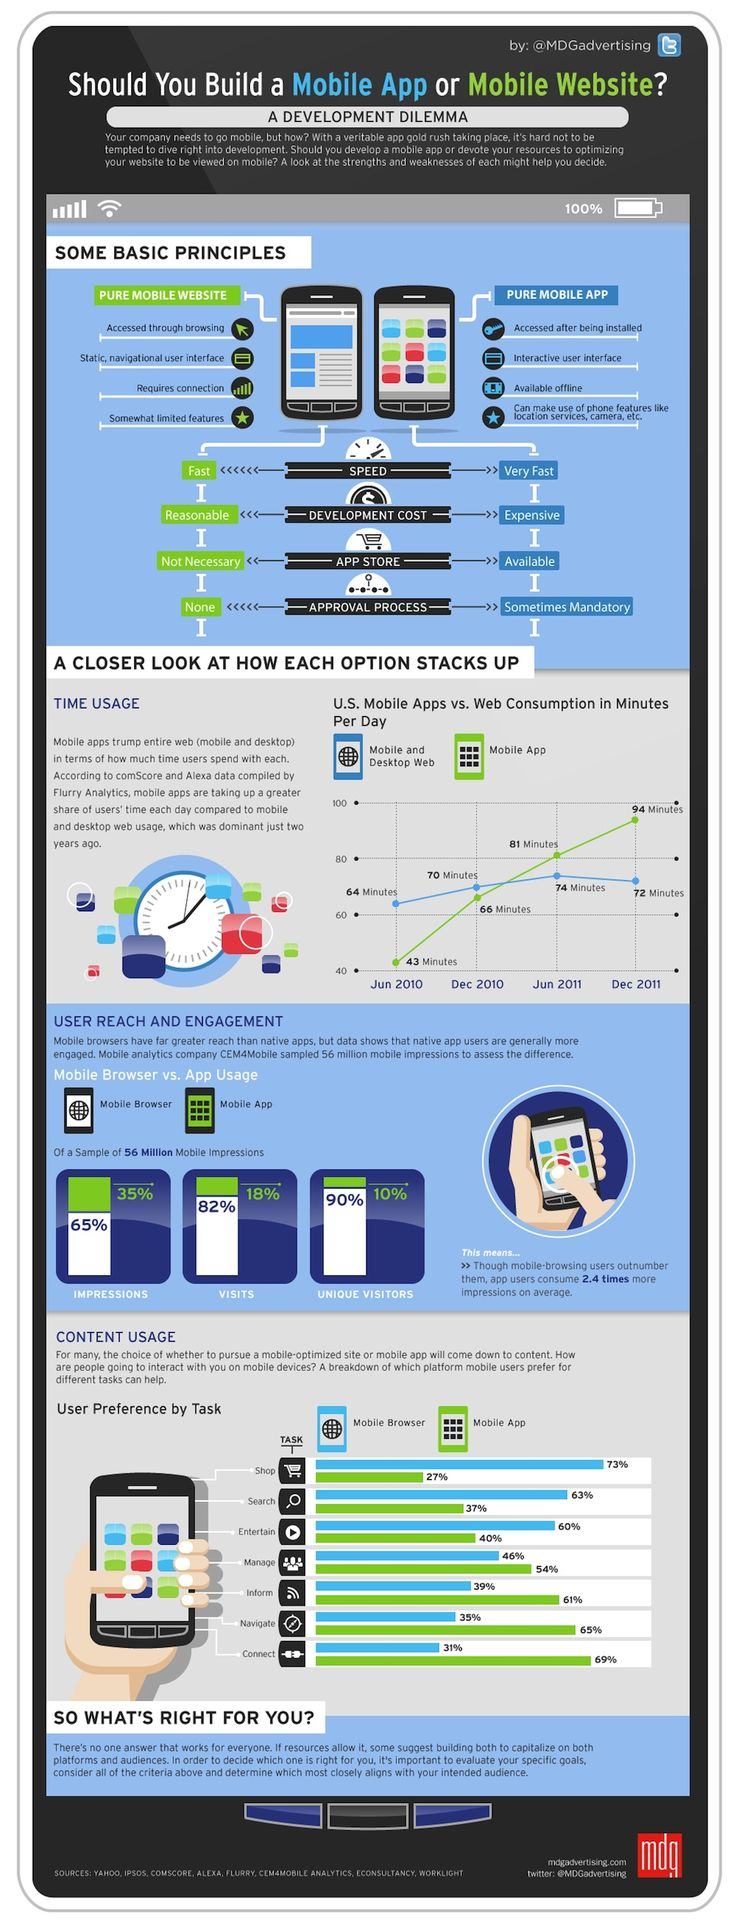 Mobile App Or Mobile Website - iNFOGRAPHiCs MANiA